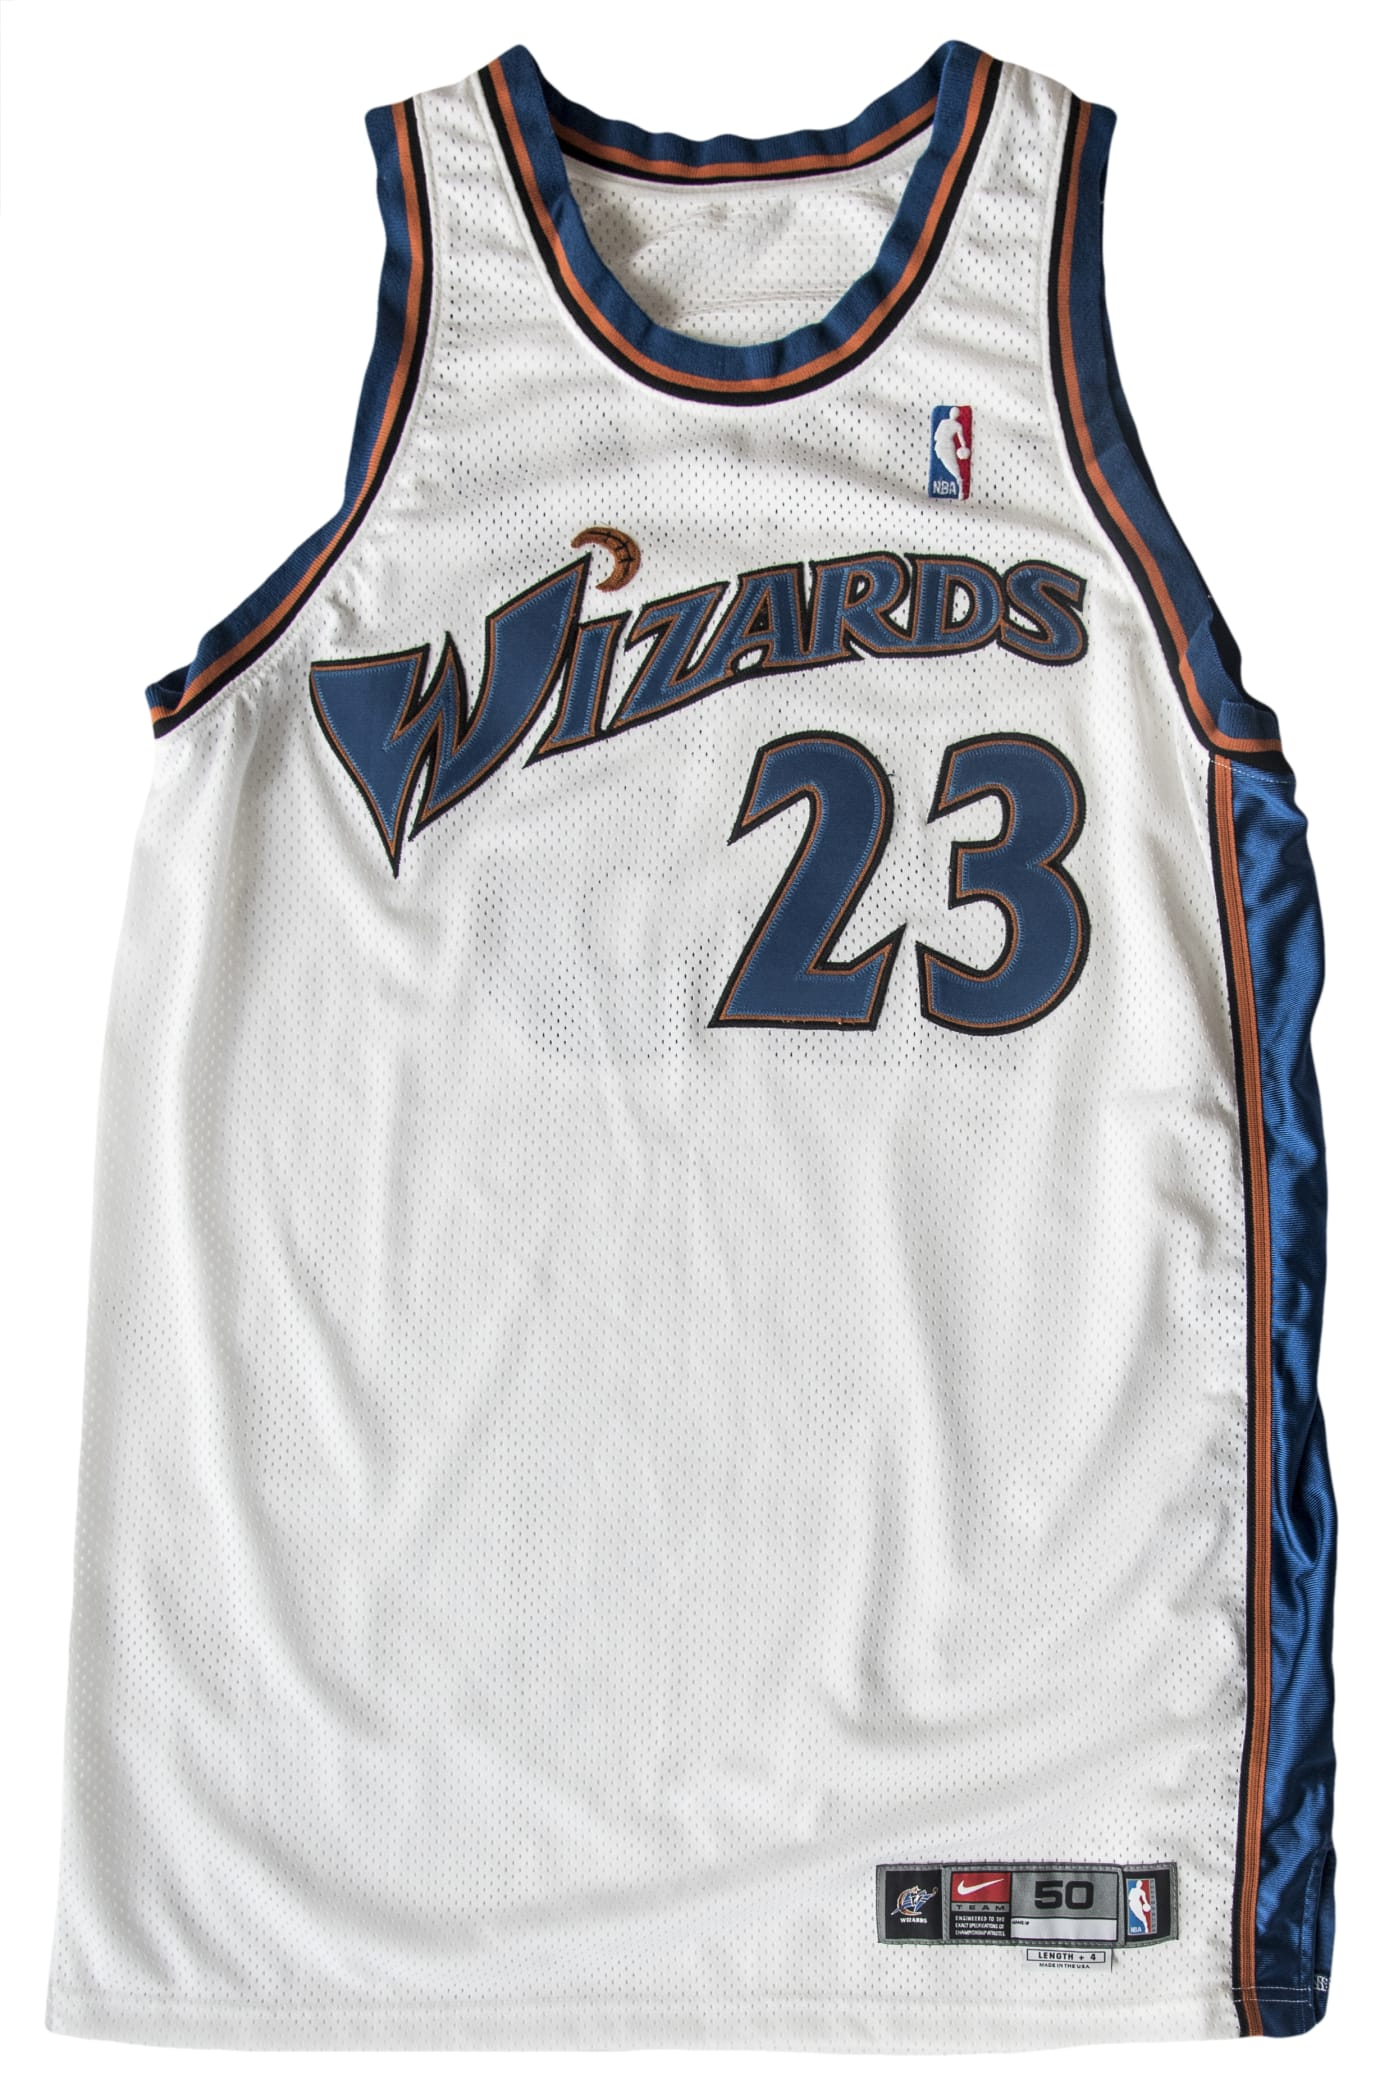 detailed look 10a6c 5efdf Why Someone Paid $50,000 for Michael Jordan's Wizards Jersey ...